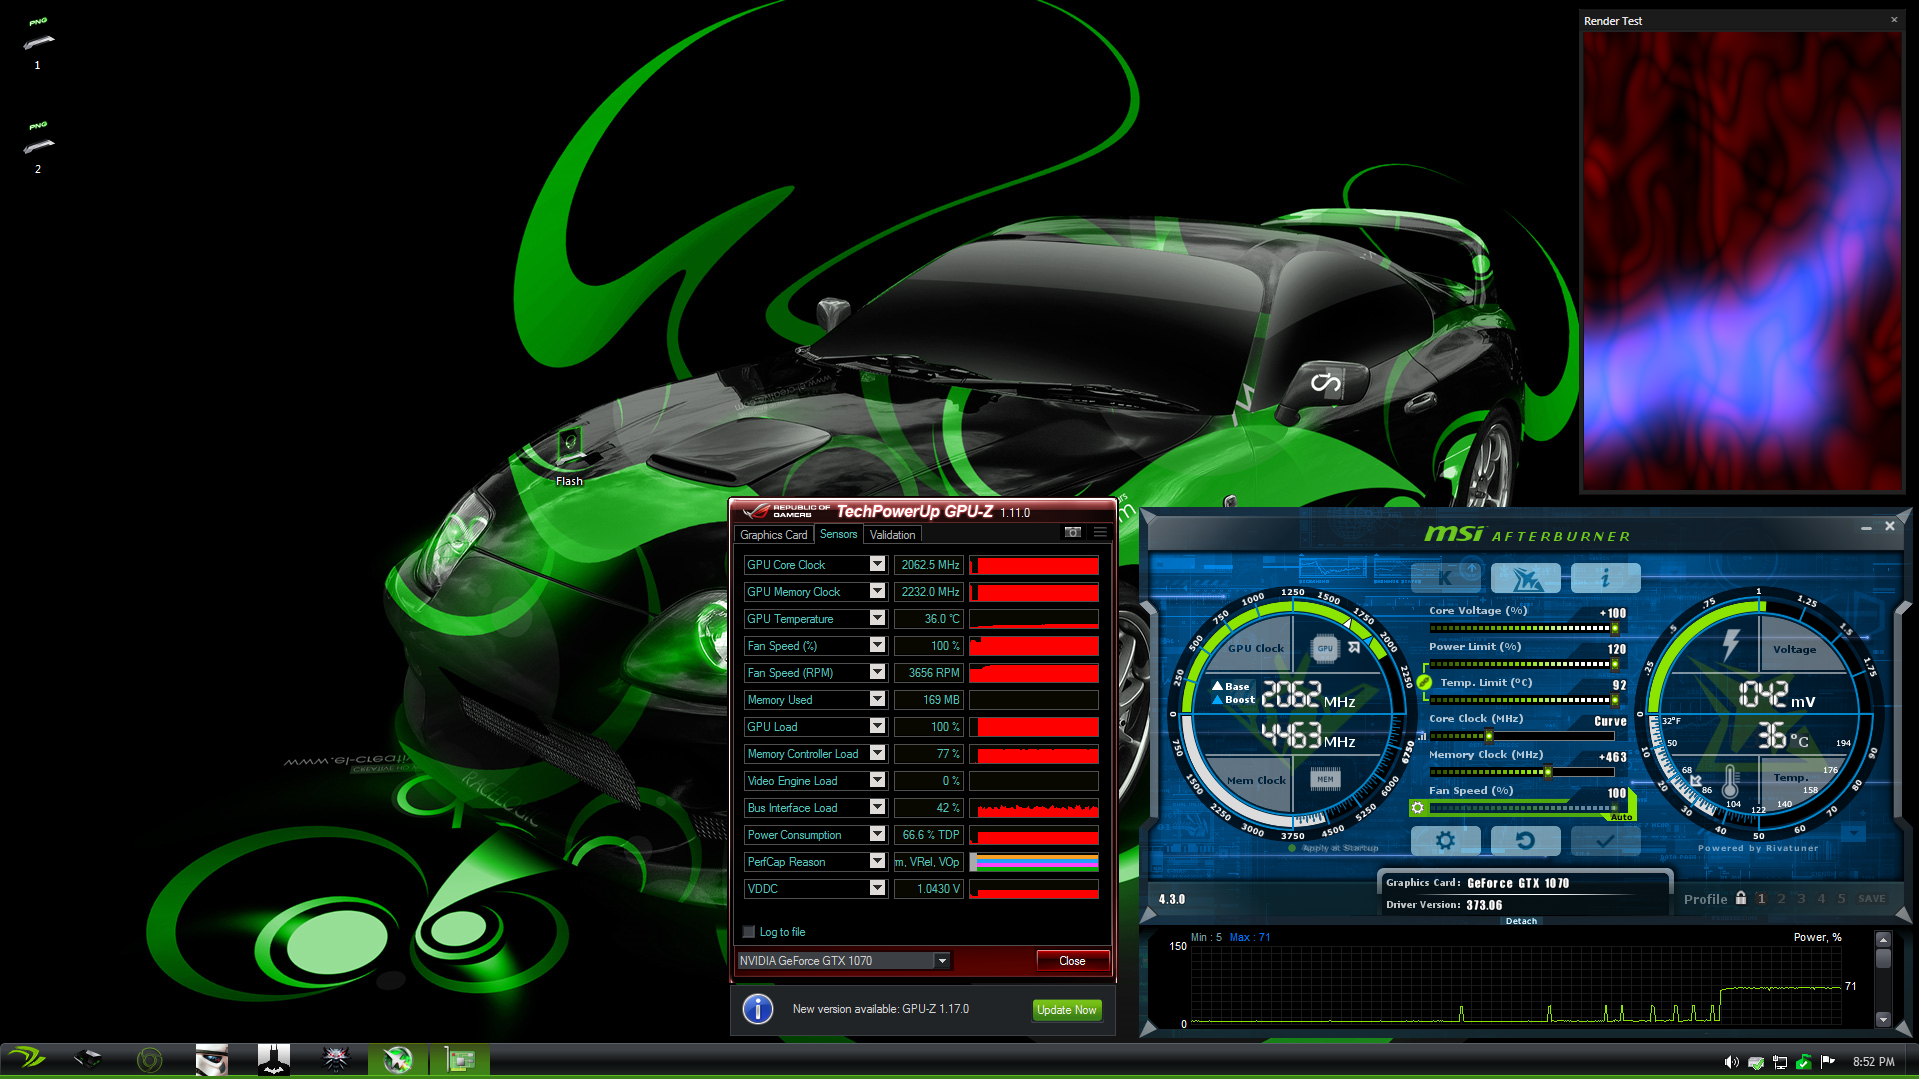 Pascal Bios Editor - Any news? - Page 2 - Overclock net - An